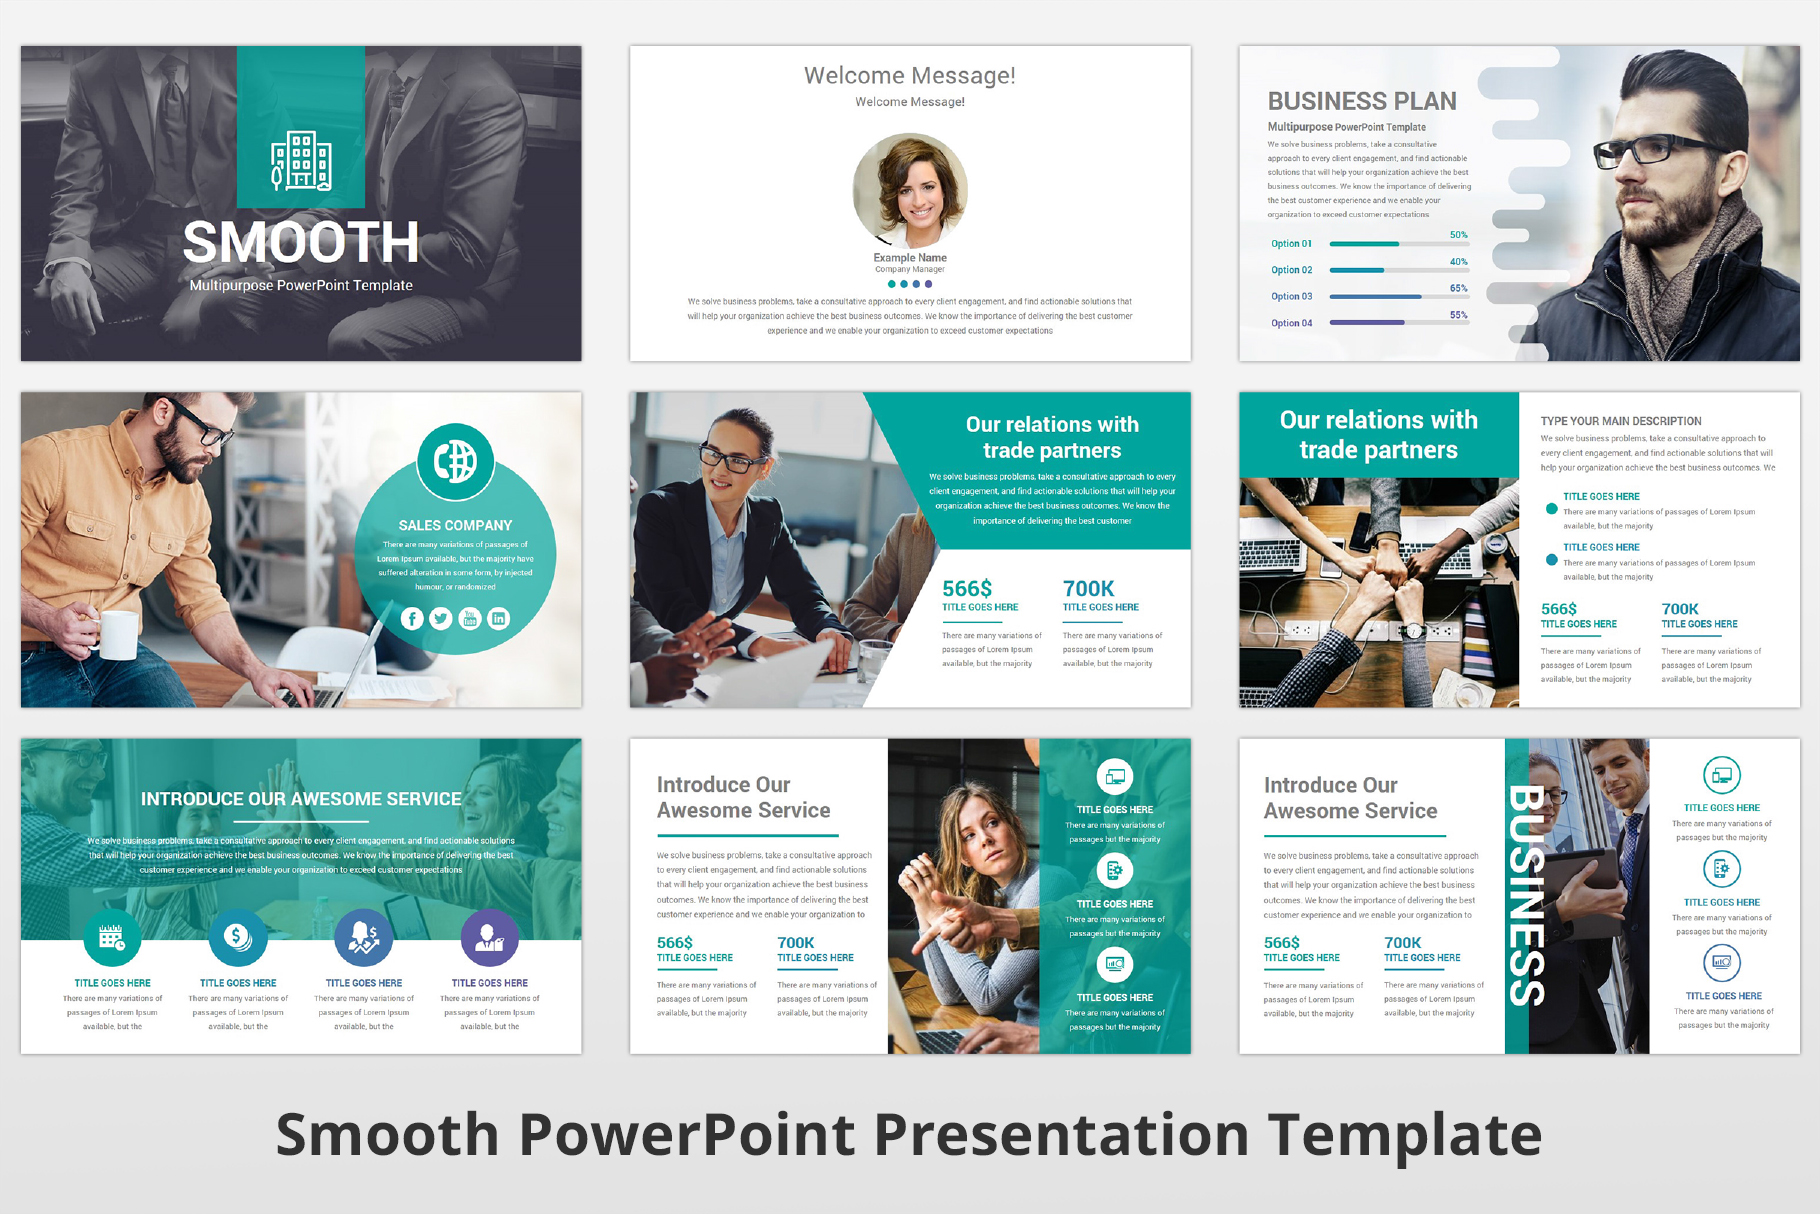 Smooth multipurpose PowerPoint Presentation Template example image 4